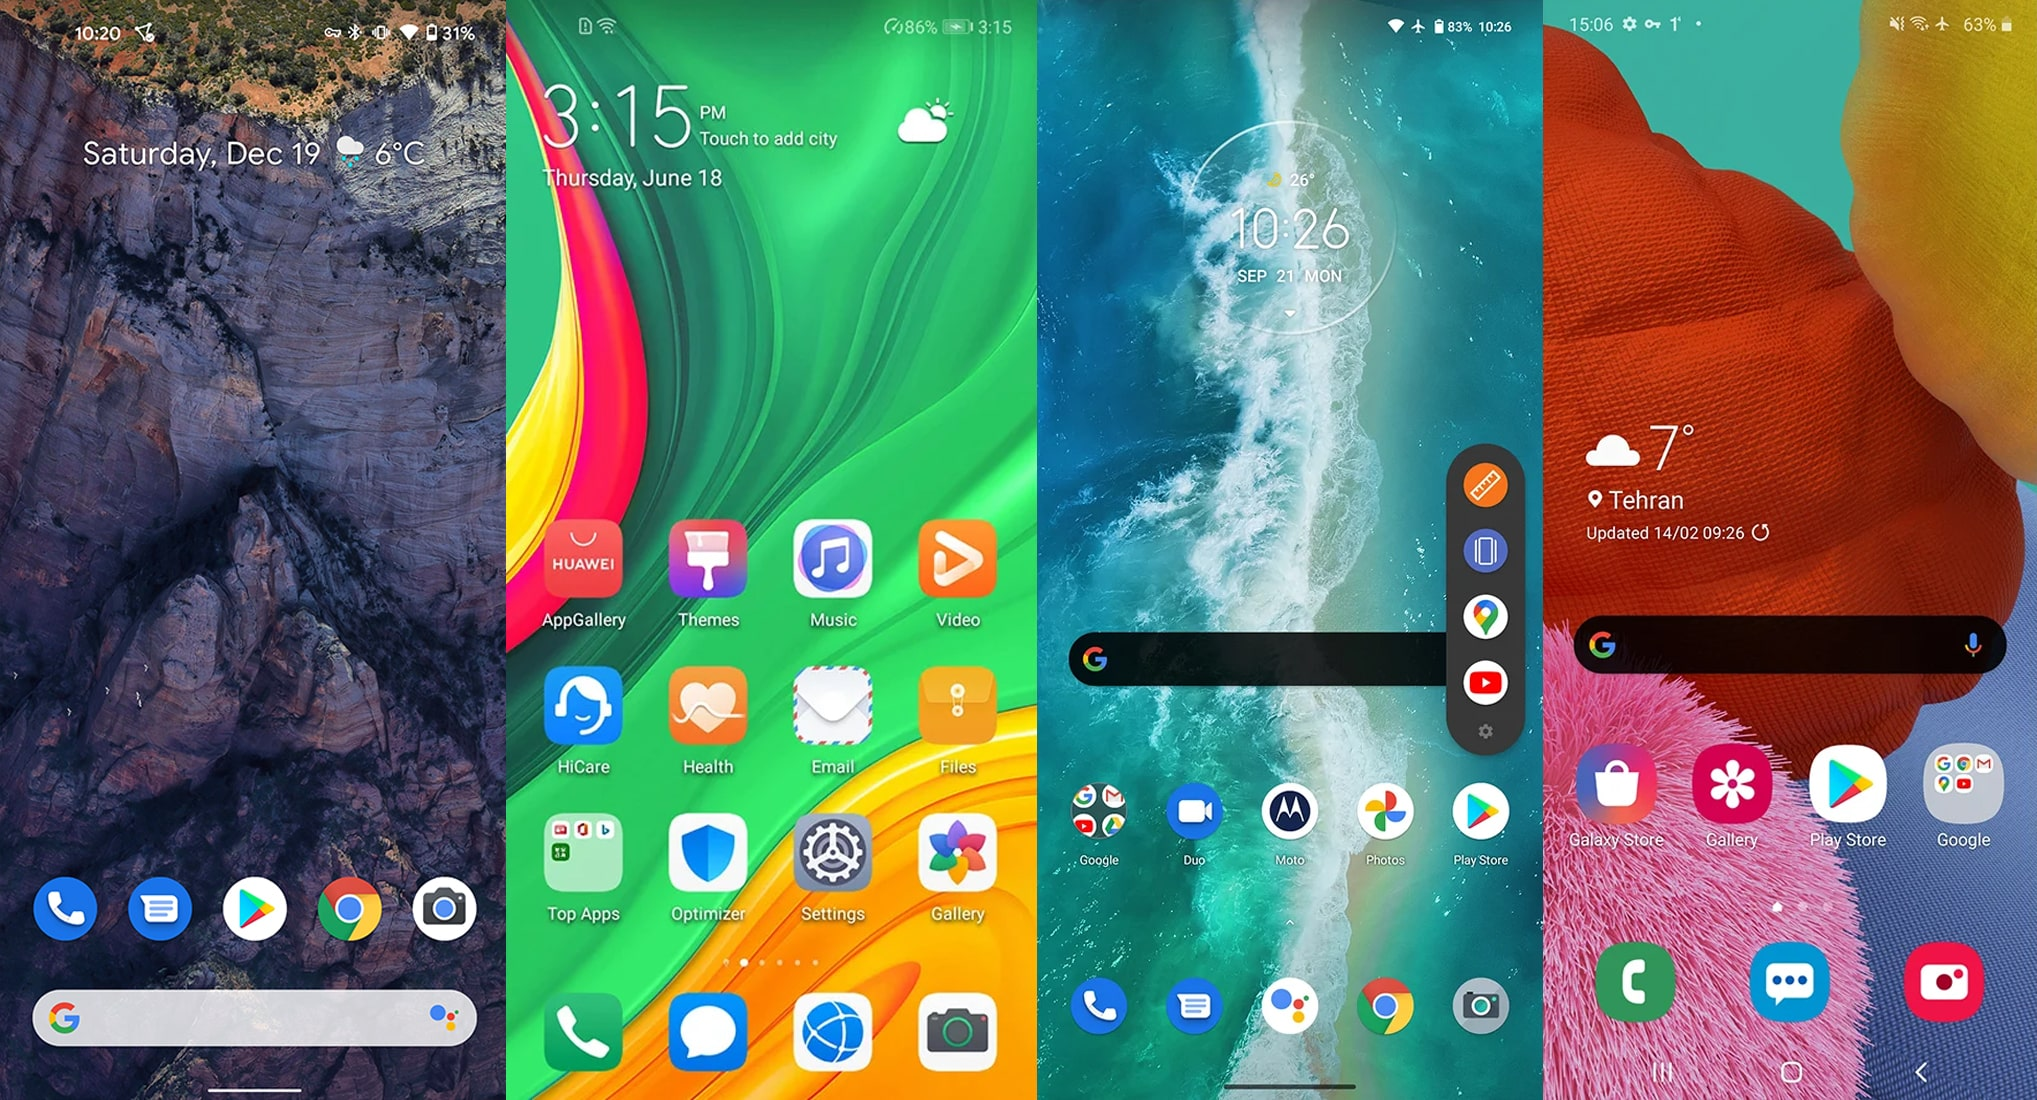 Compare pure Android with other user interfaces